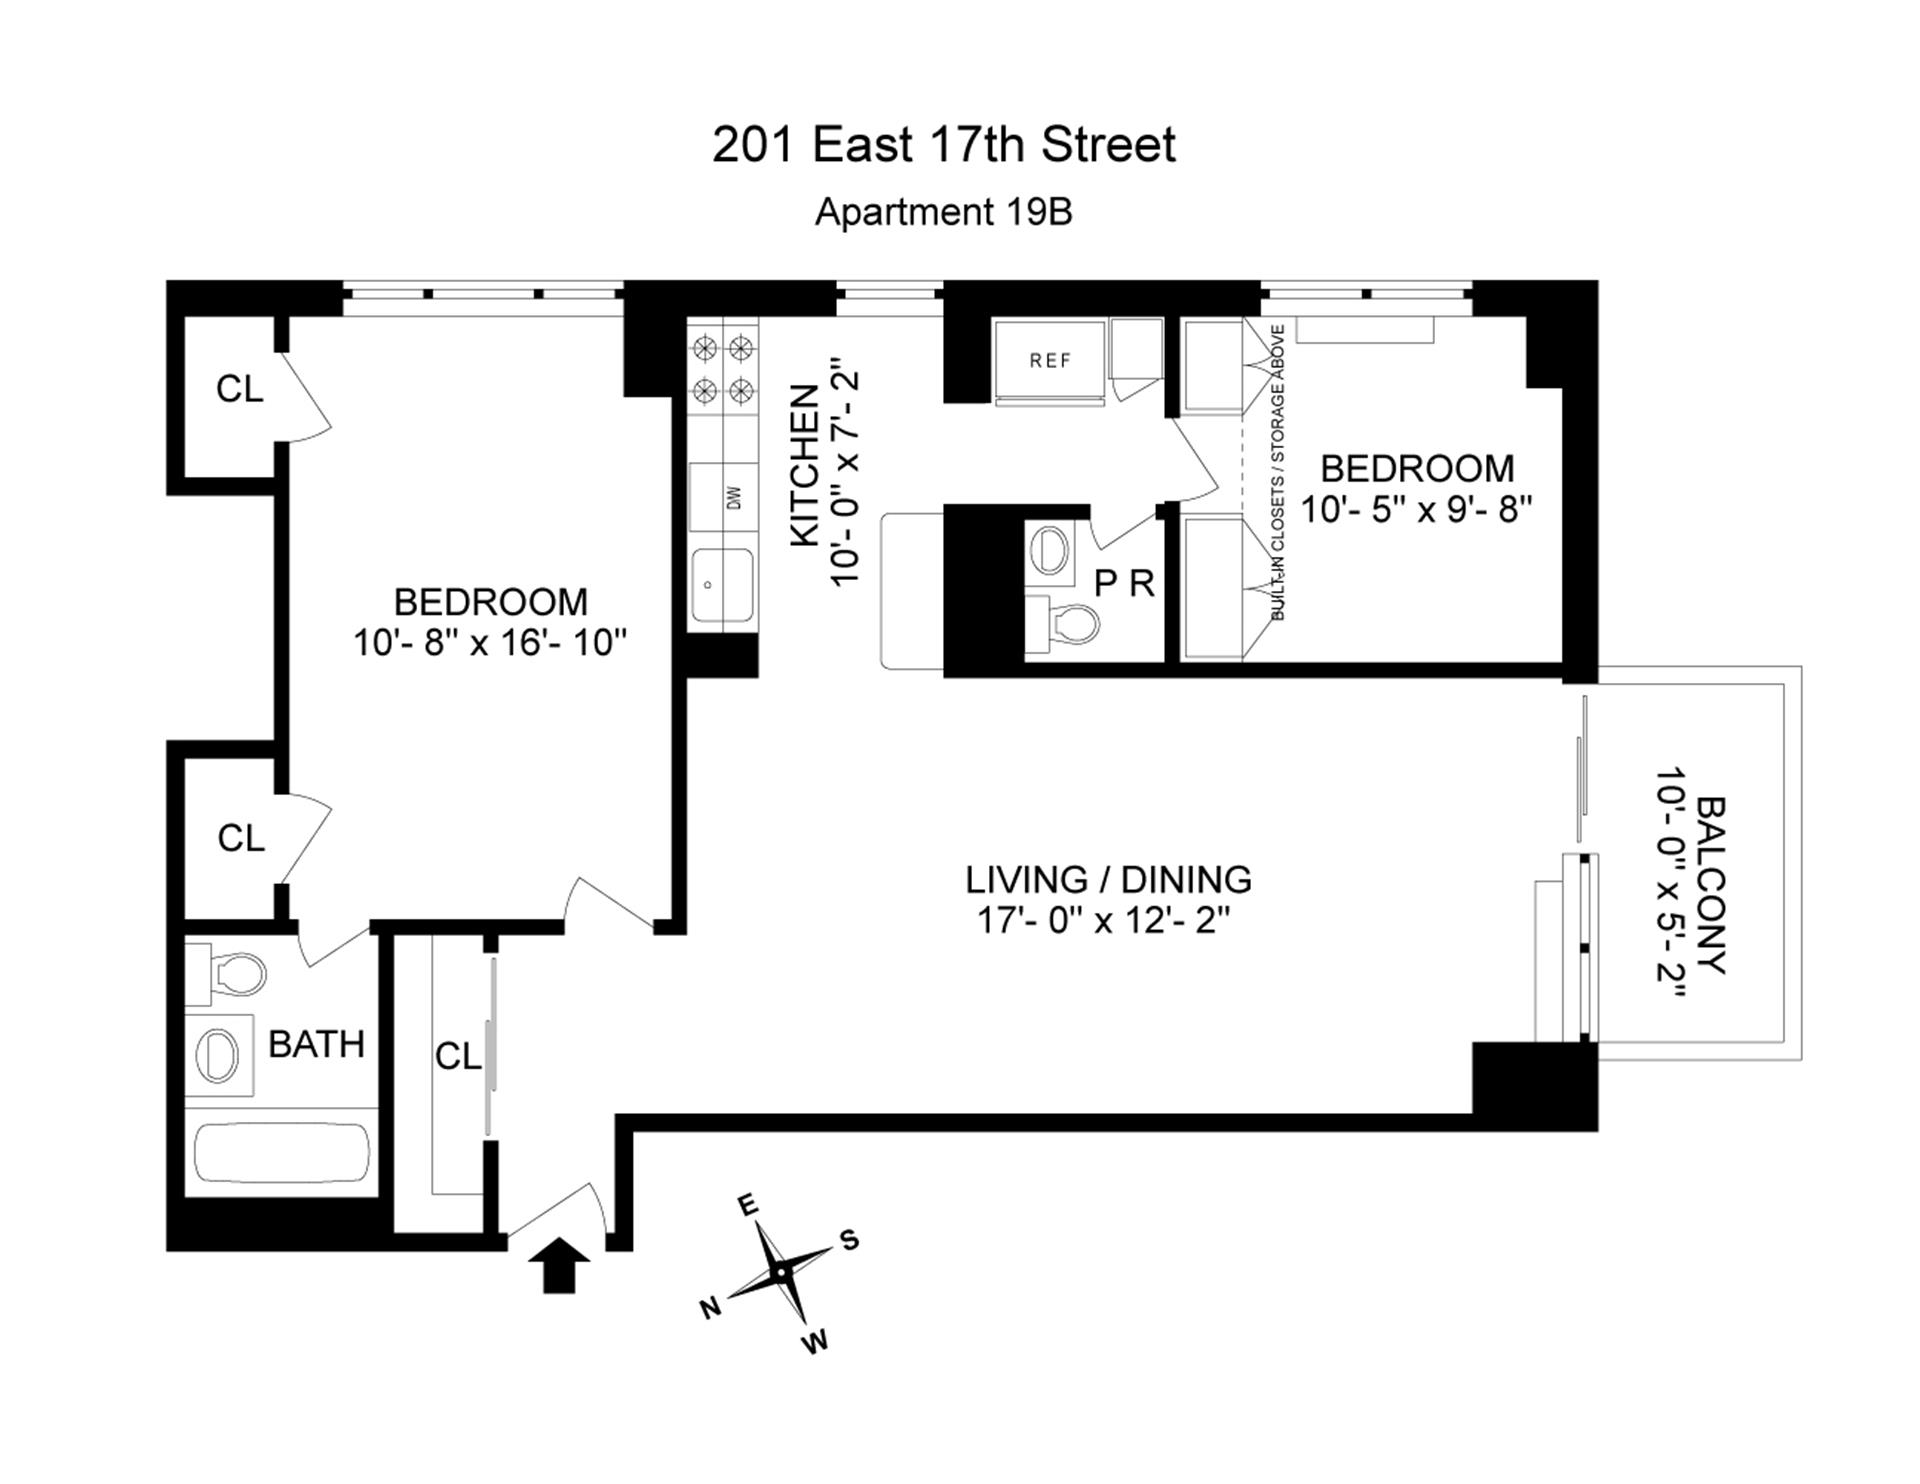 Floor plan of 201 East 17th St, 19B - Gramercy - Union Square, New York